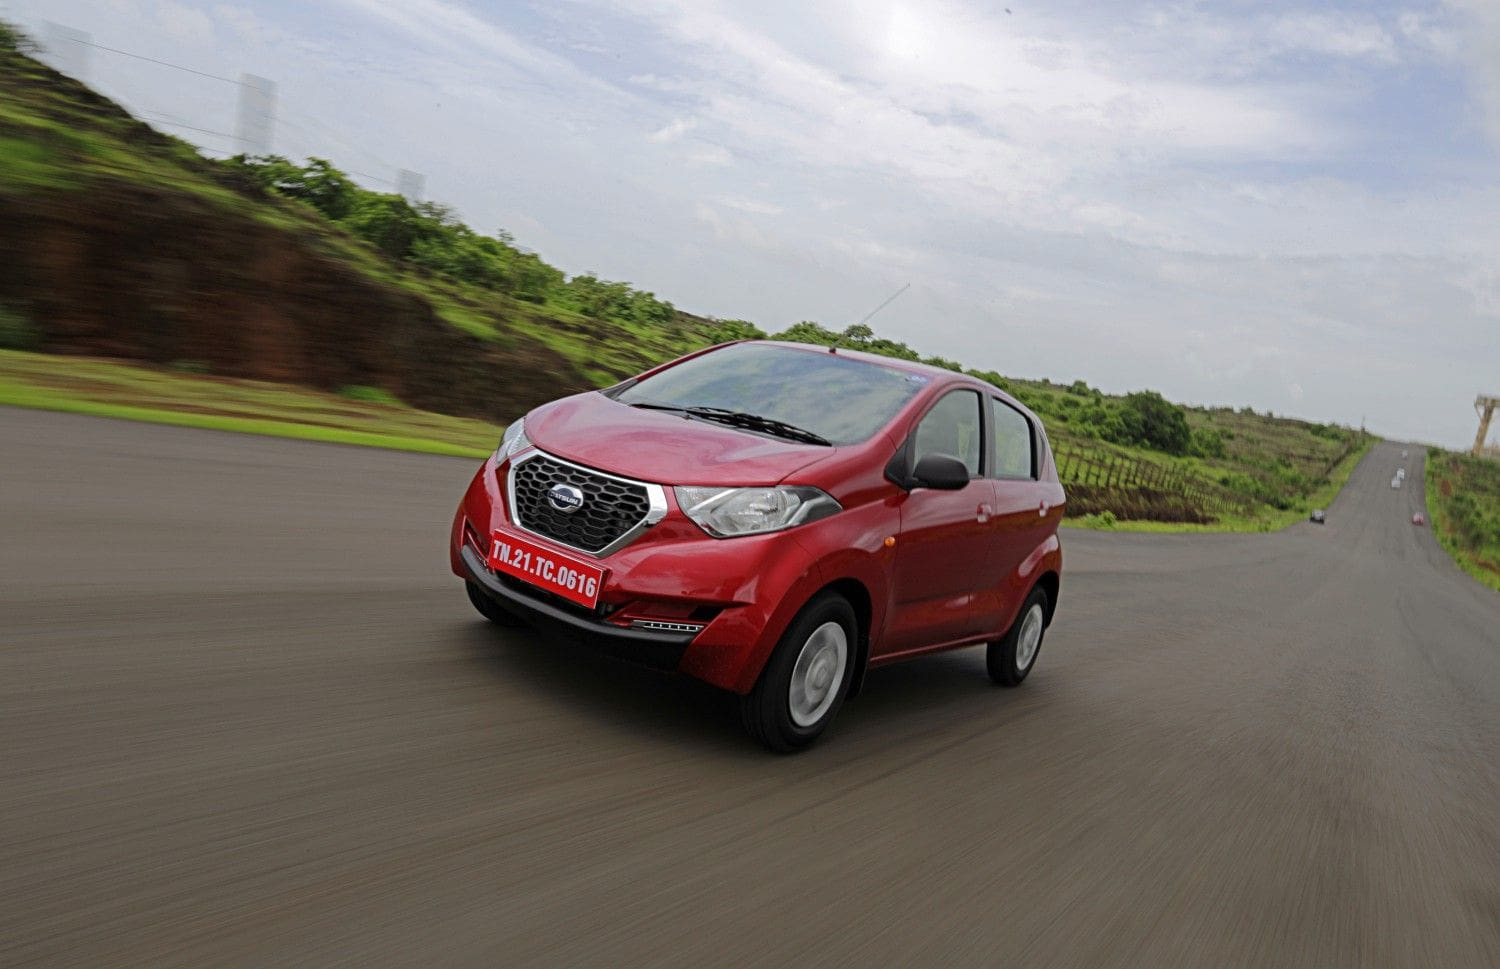 Datsun redi-GO 1.0-Litre: First Drive Review